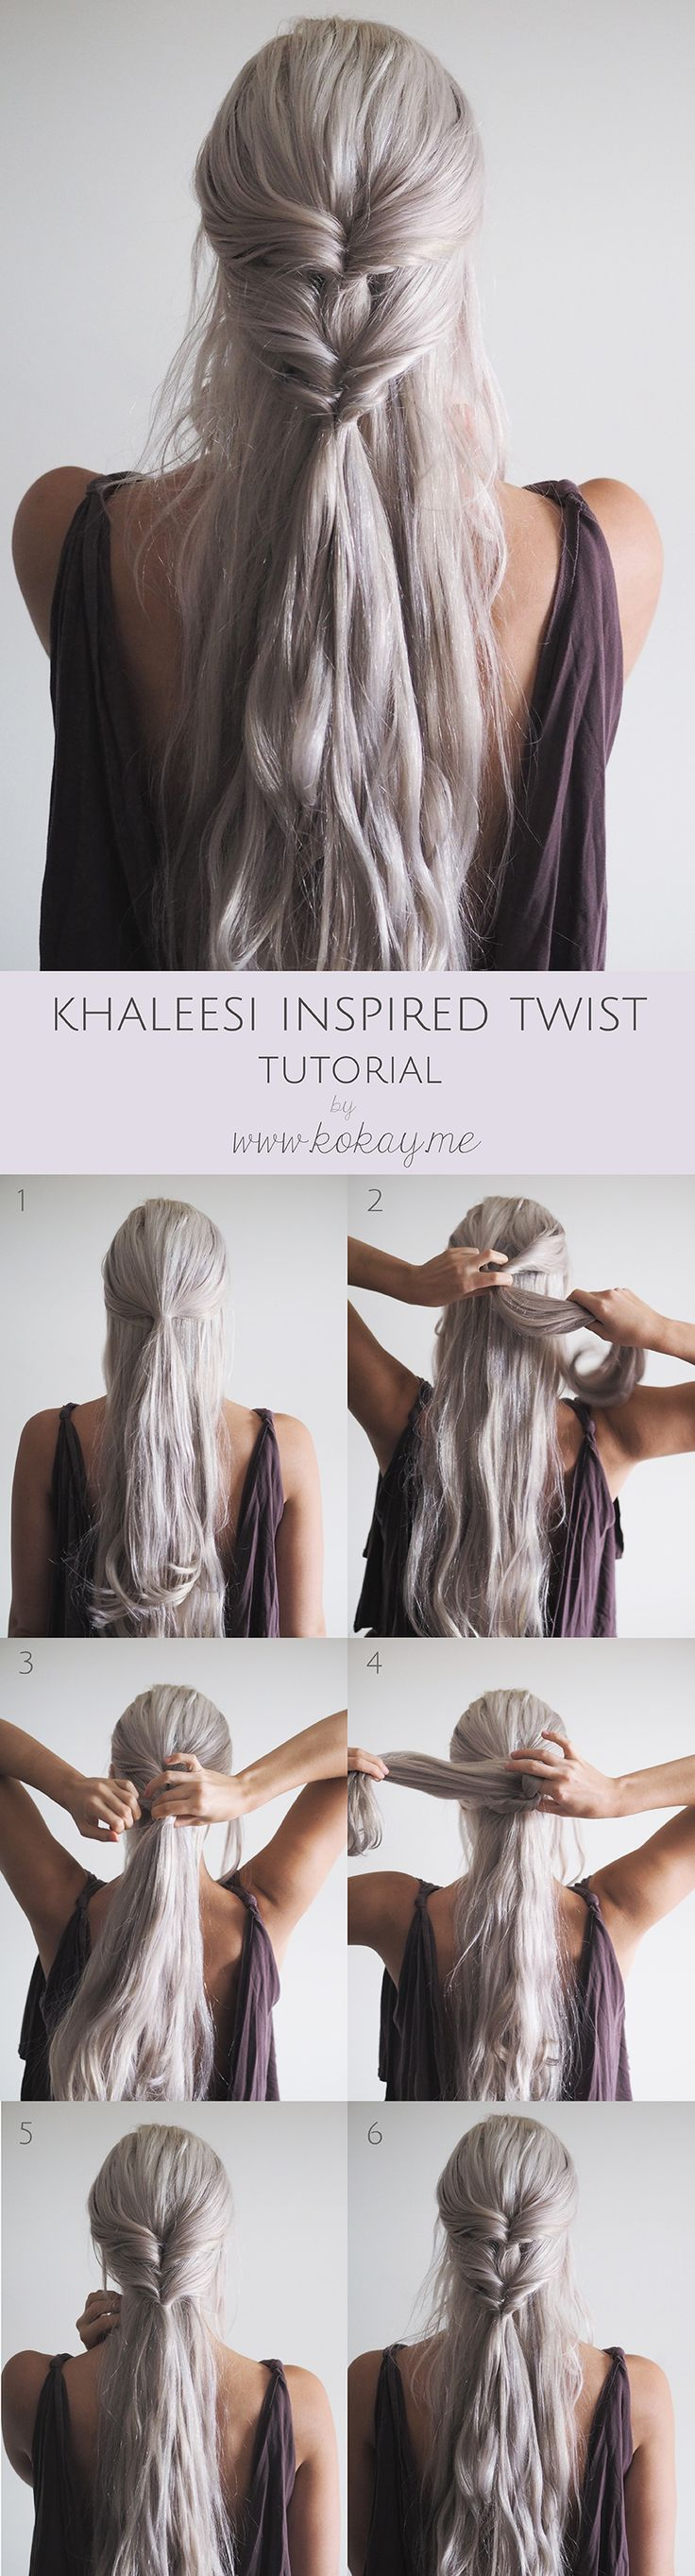 Beautiful Half Up Khaleesi inspired twist tutorial - full instructions included #bohobabe...x